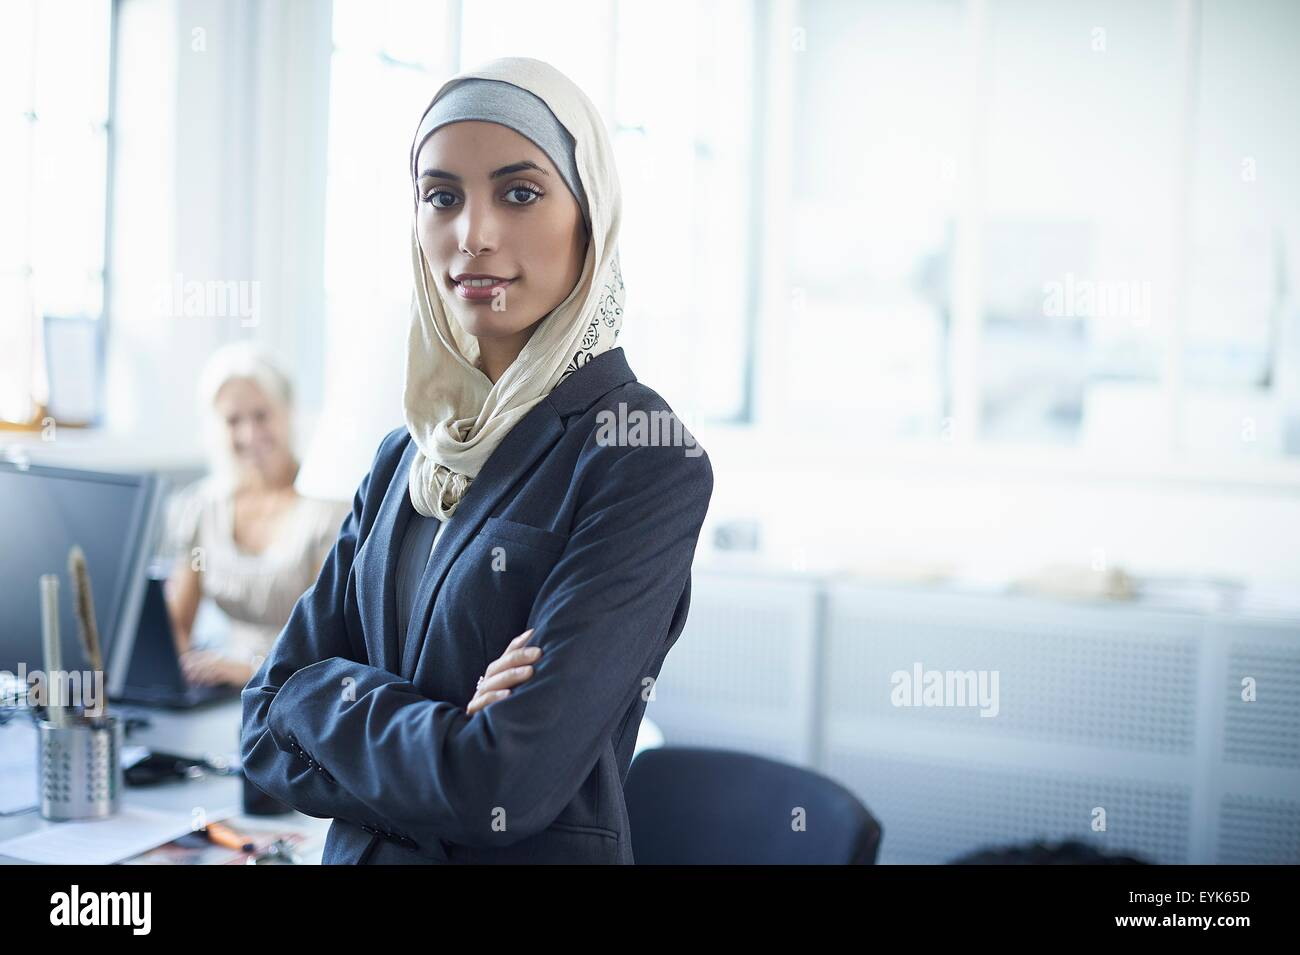 Portrait of young businesswoman wearing hijab in office - Stock Image